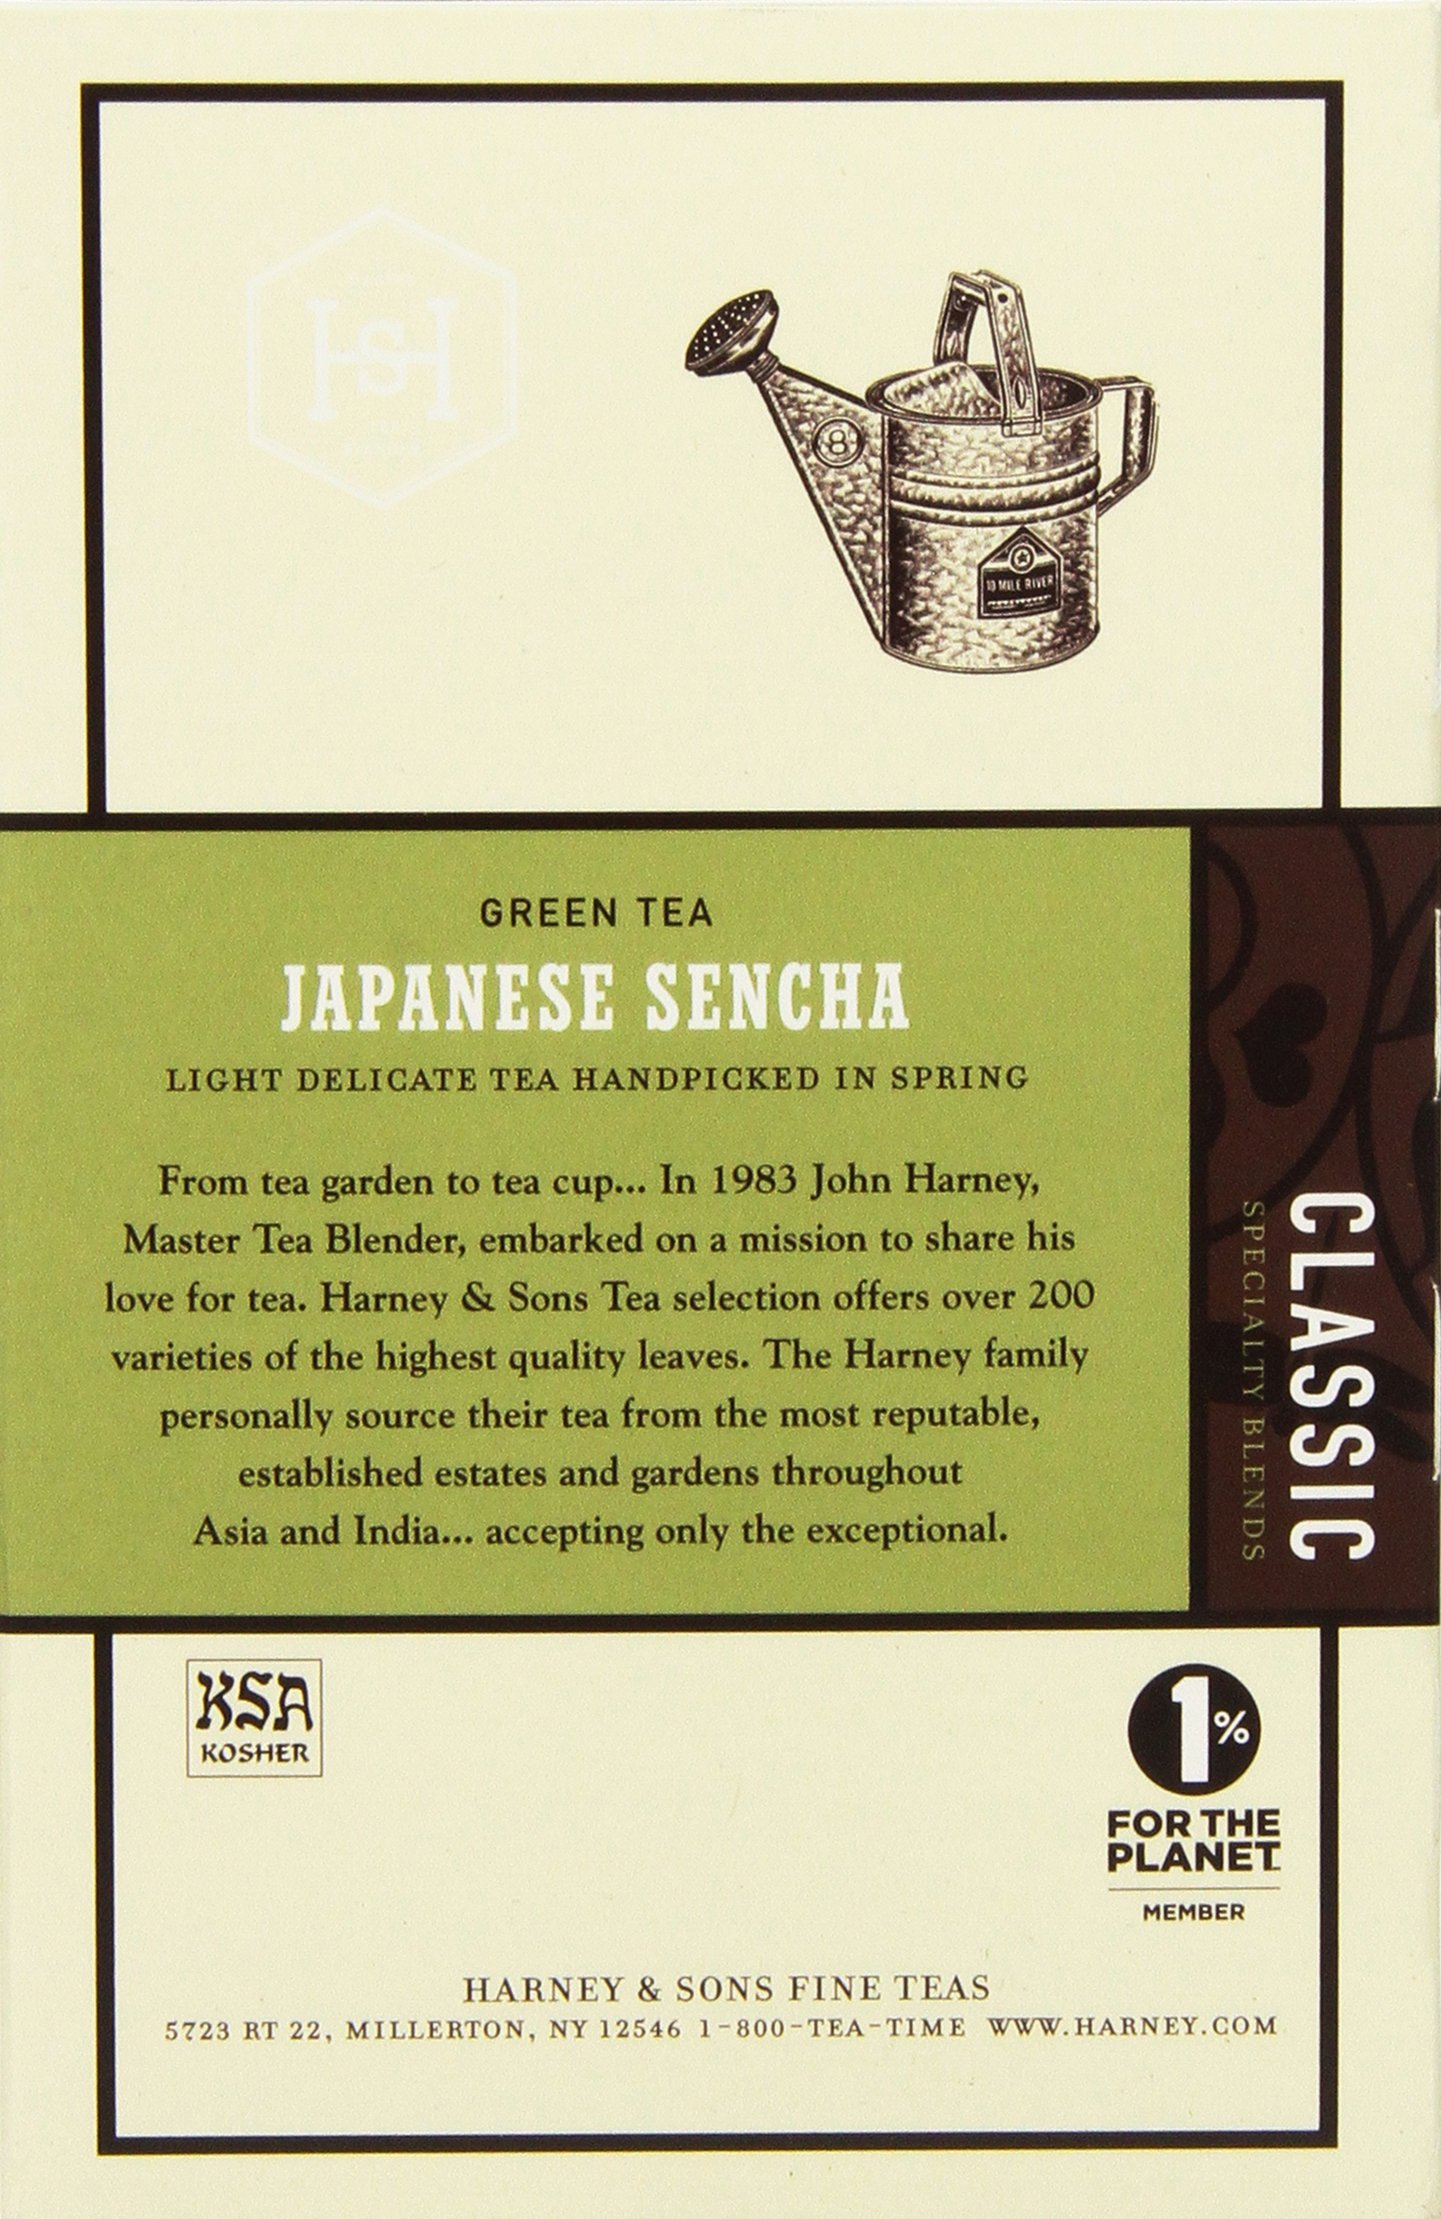 Harney & Sons Green Tea, Japanese Sencha, 20 Sachets, Pack of 6 by Harney & Sons (Image #4)